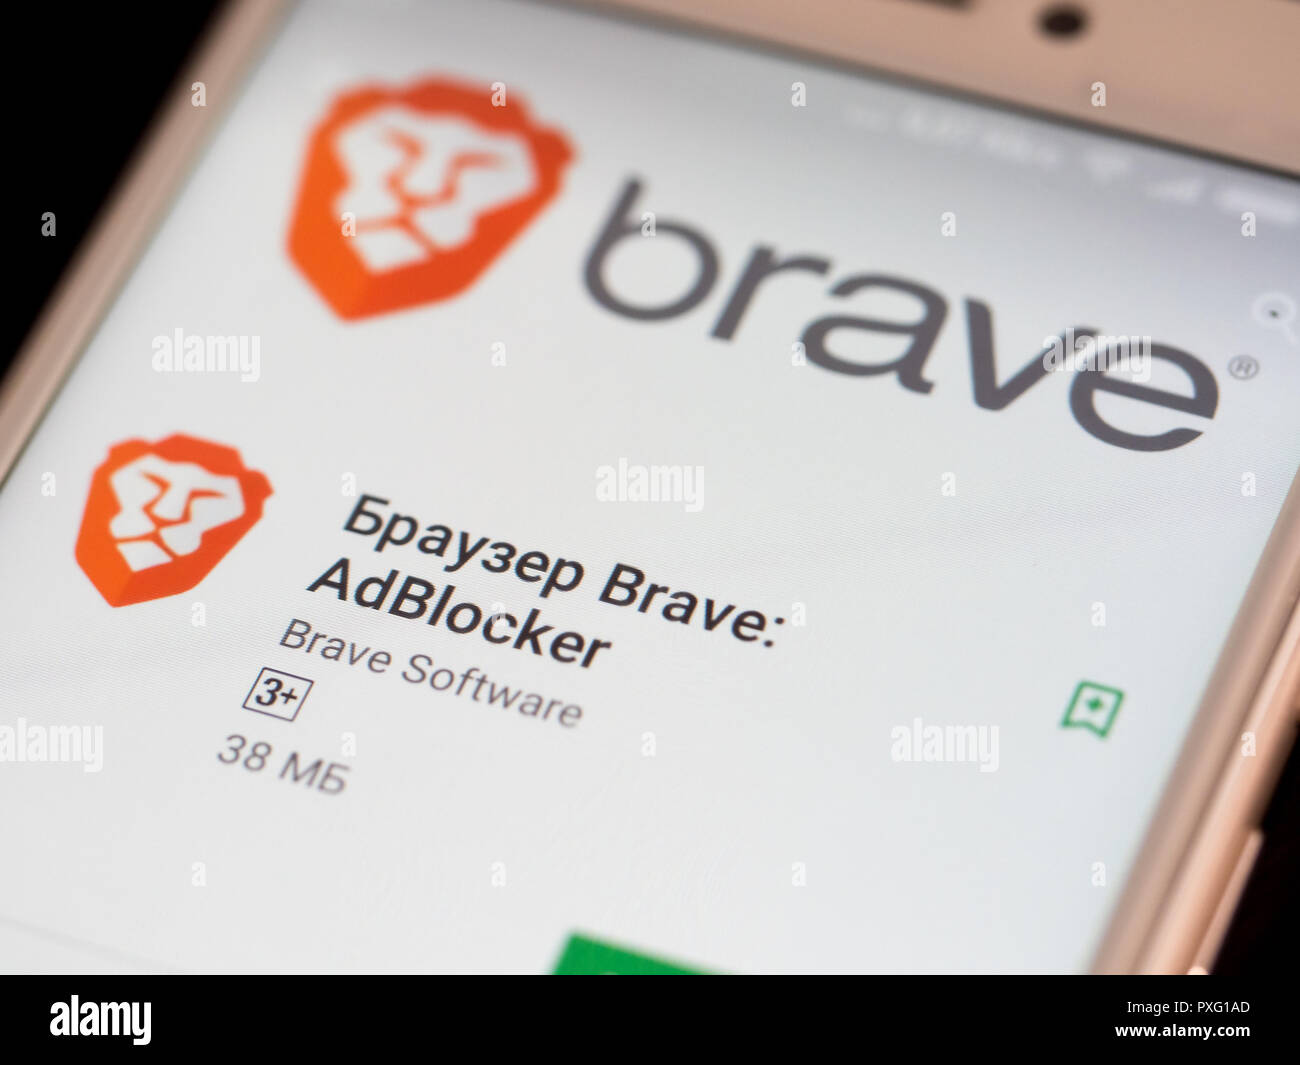 Moscow, Russia - October 16, 2018 - Brave Browser: Fast